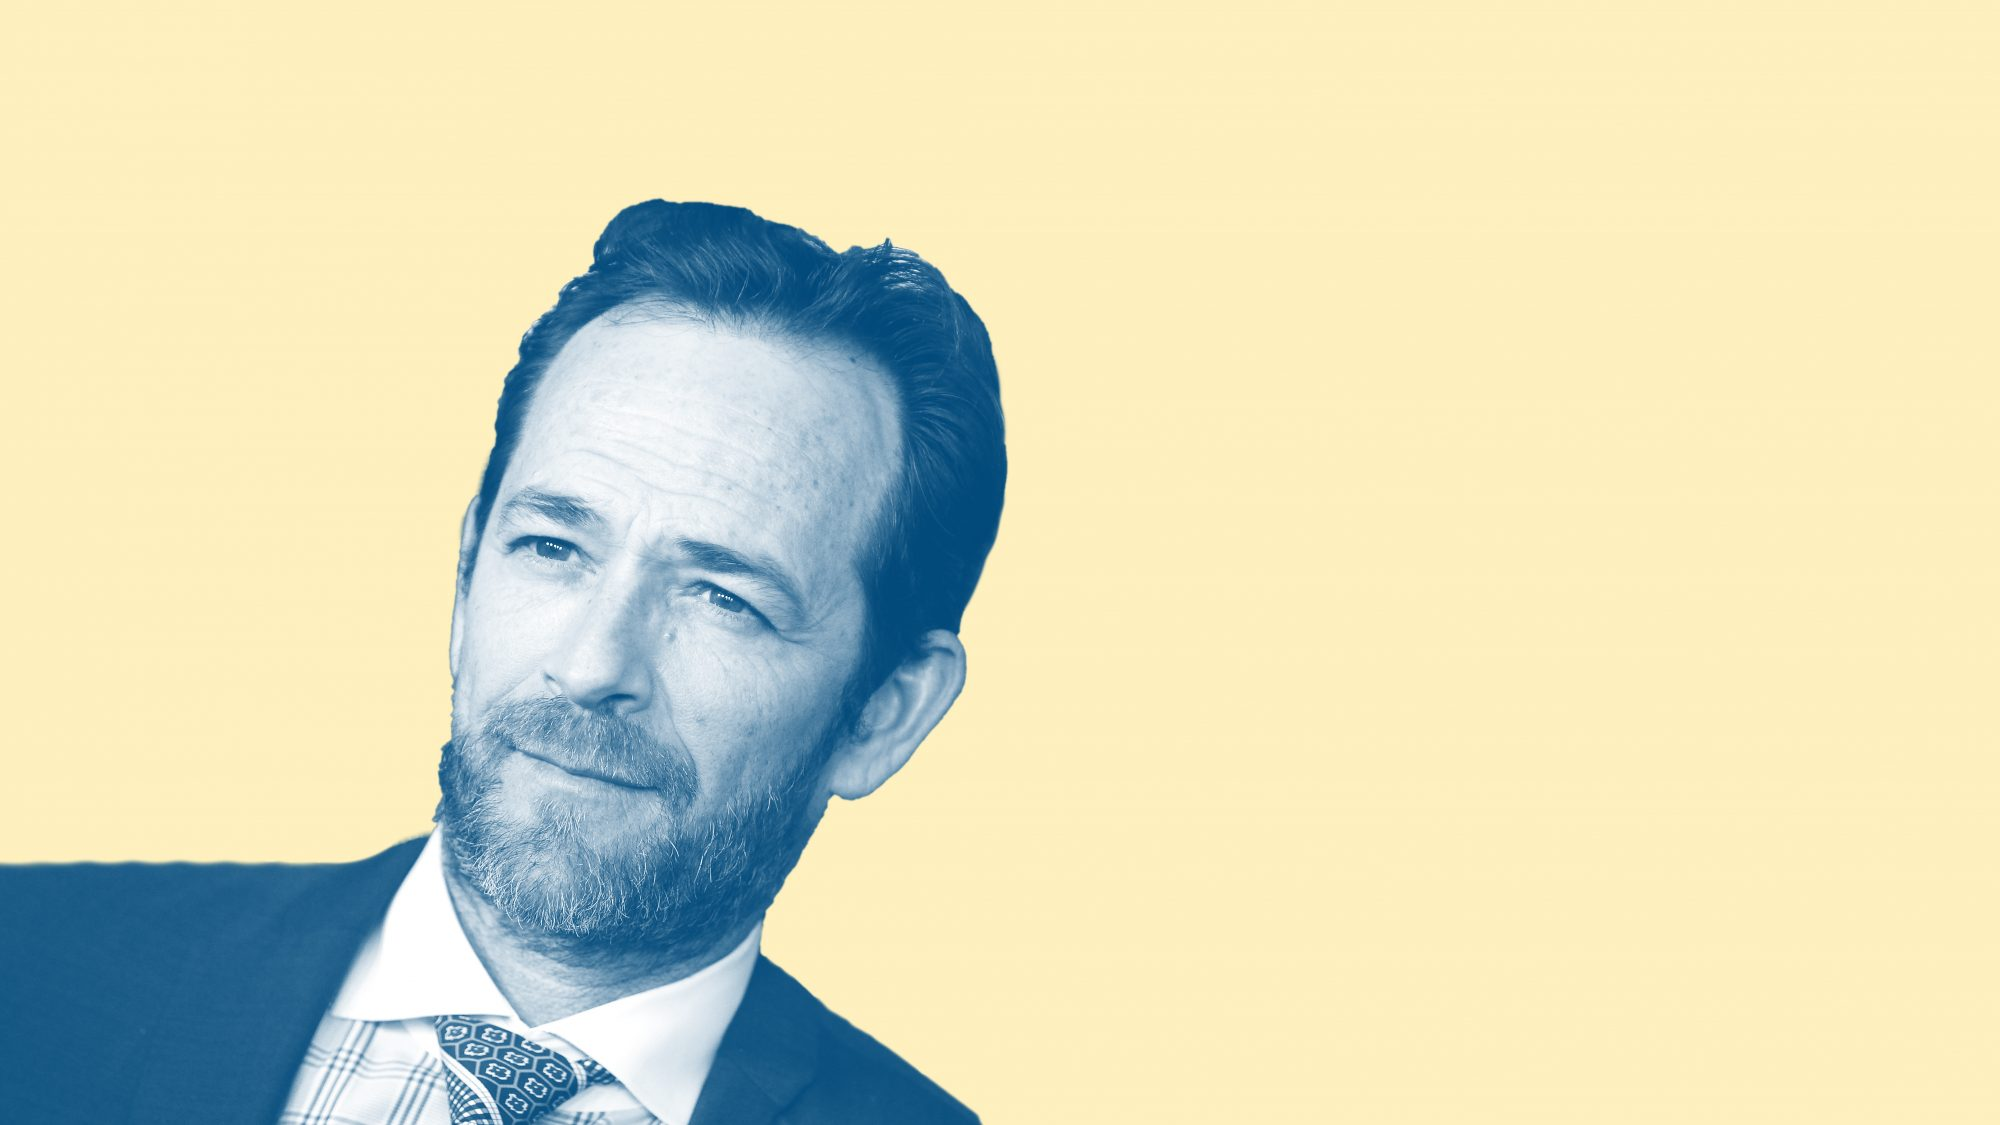 luke-perry news stroke health wellbeing celebrity